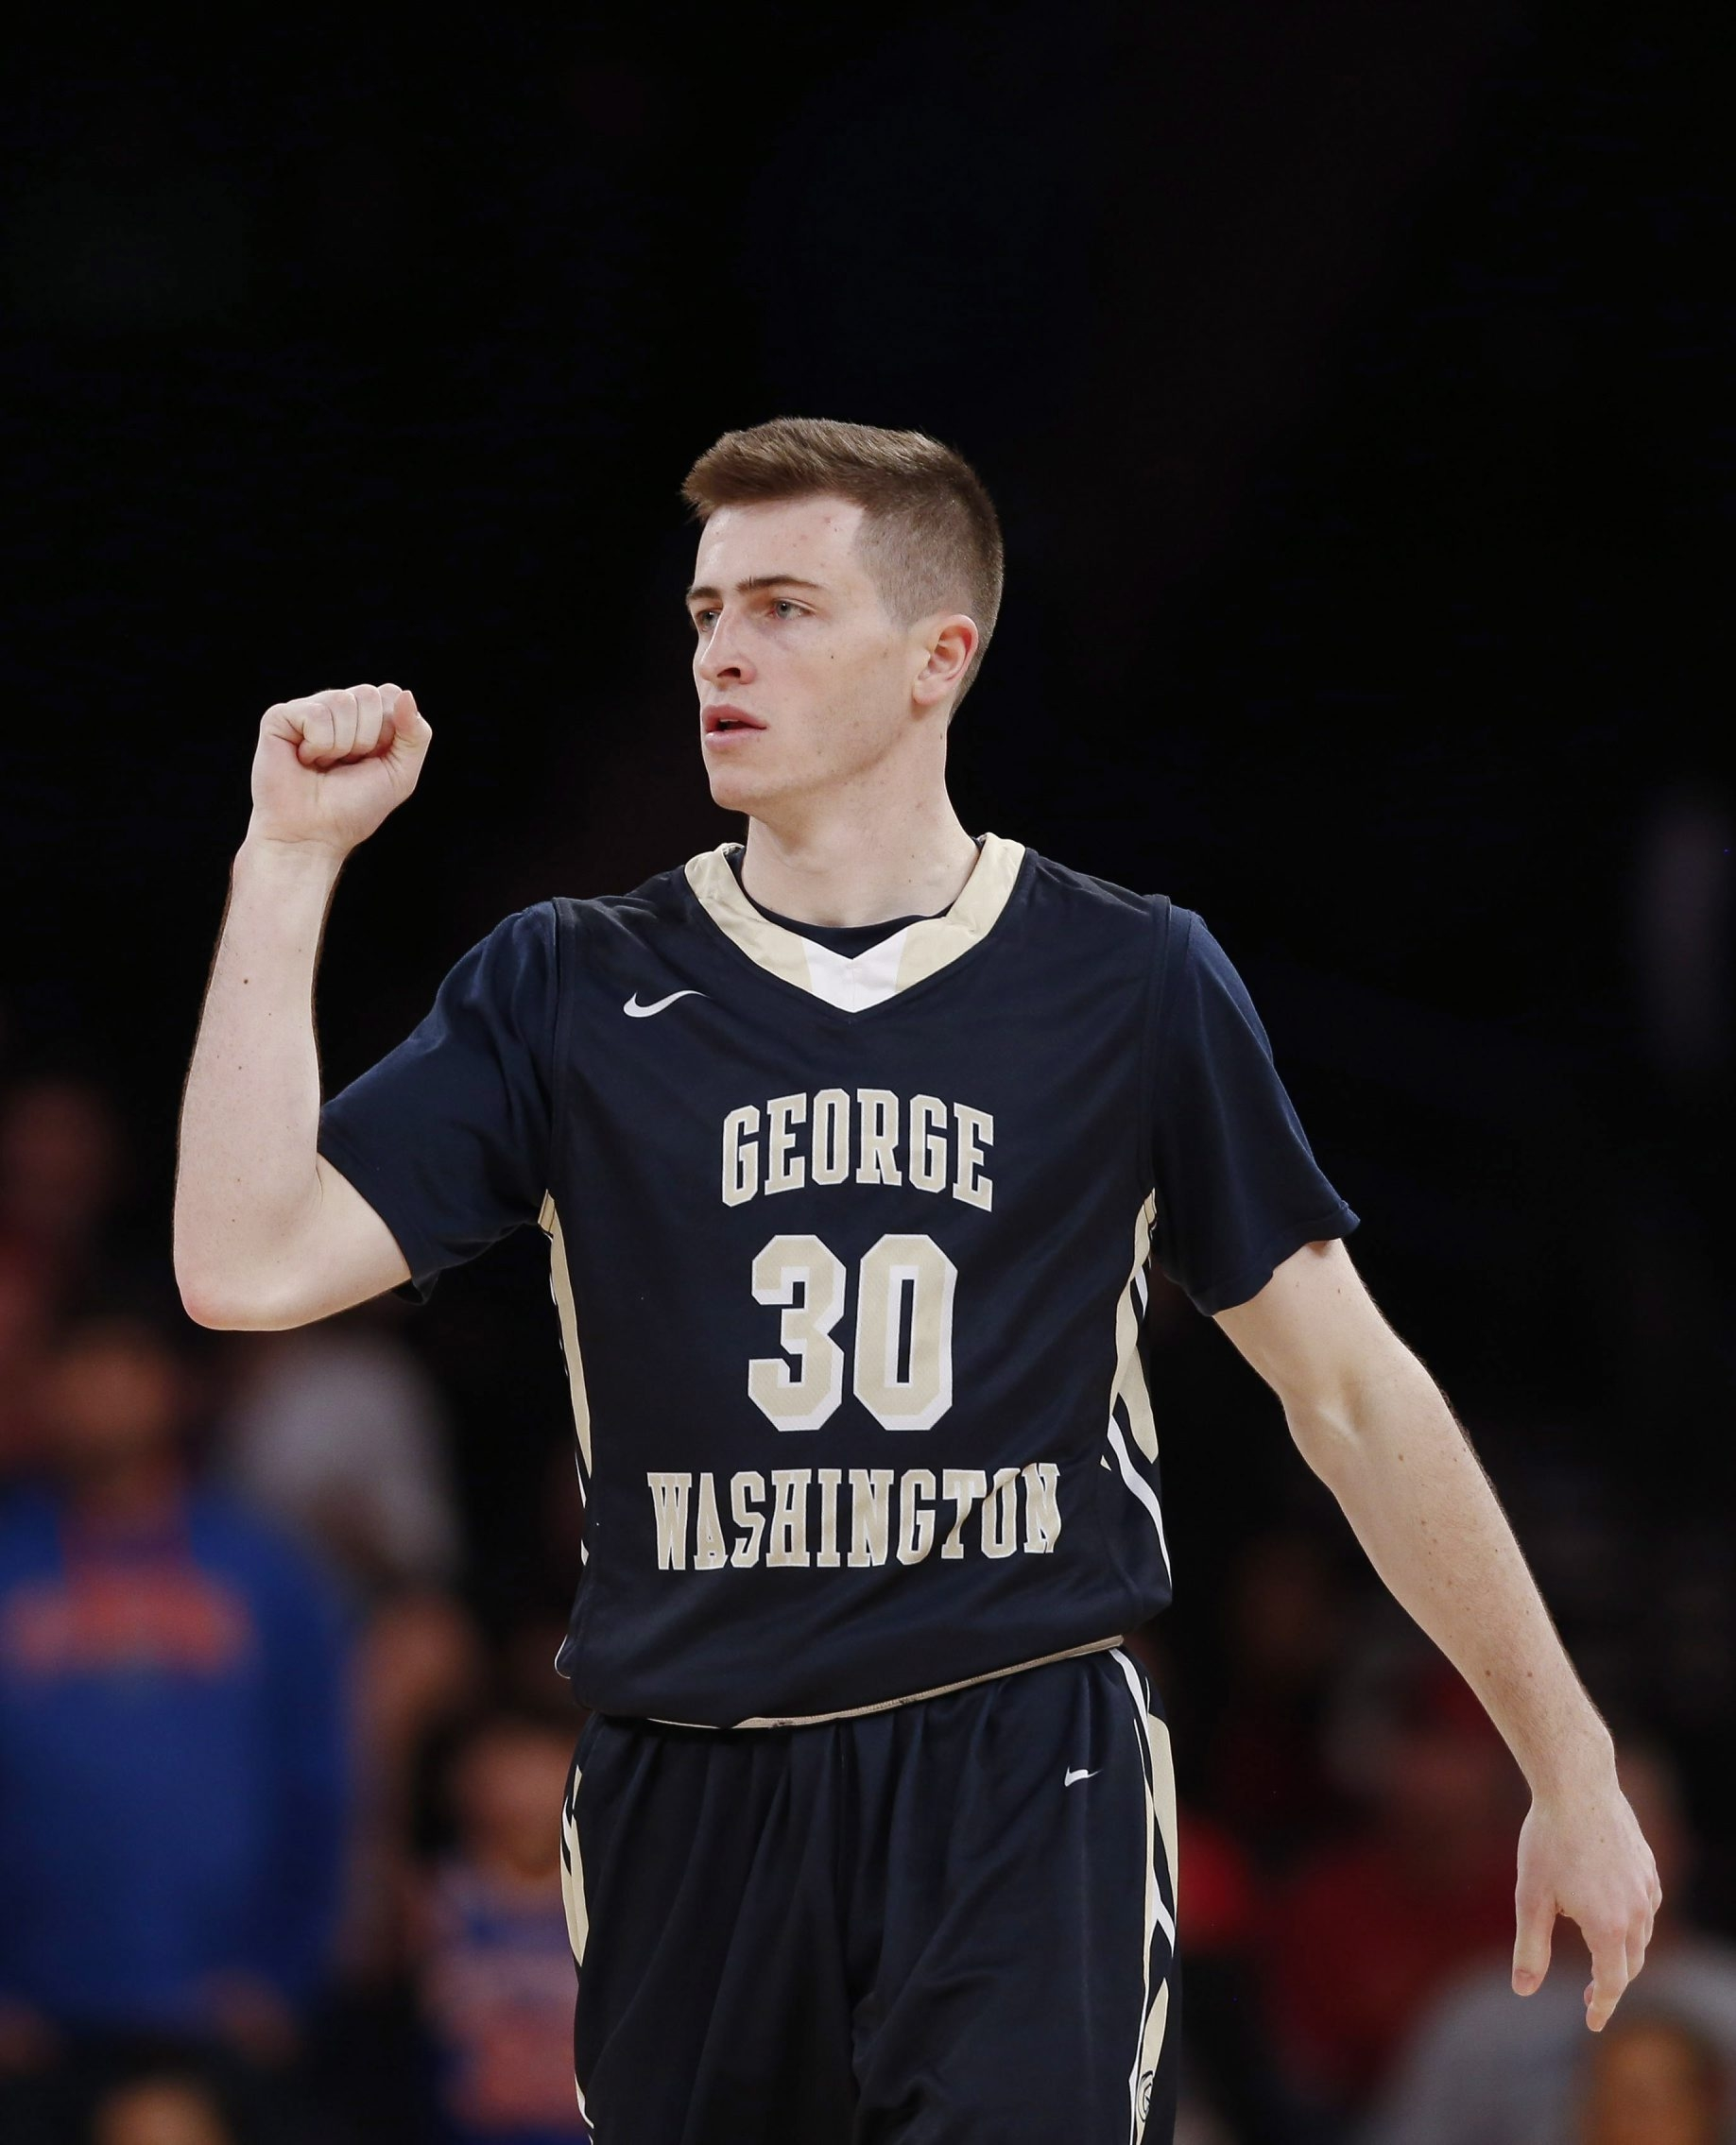 Matt Hart of the George Washington Colonials reacts after his team's win over the San Diego State Aztecs during their NIT Championship Semifinal game at Madison Square Garden on March 29 in New York City.